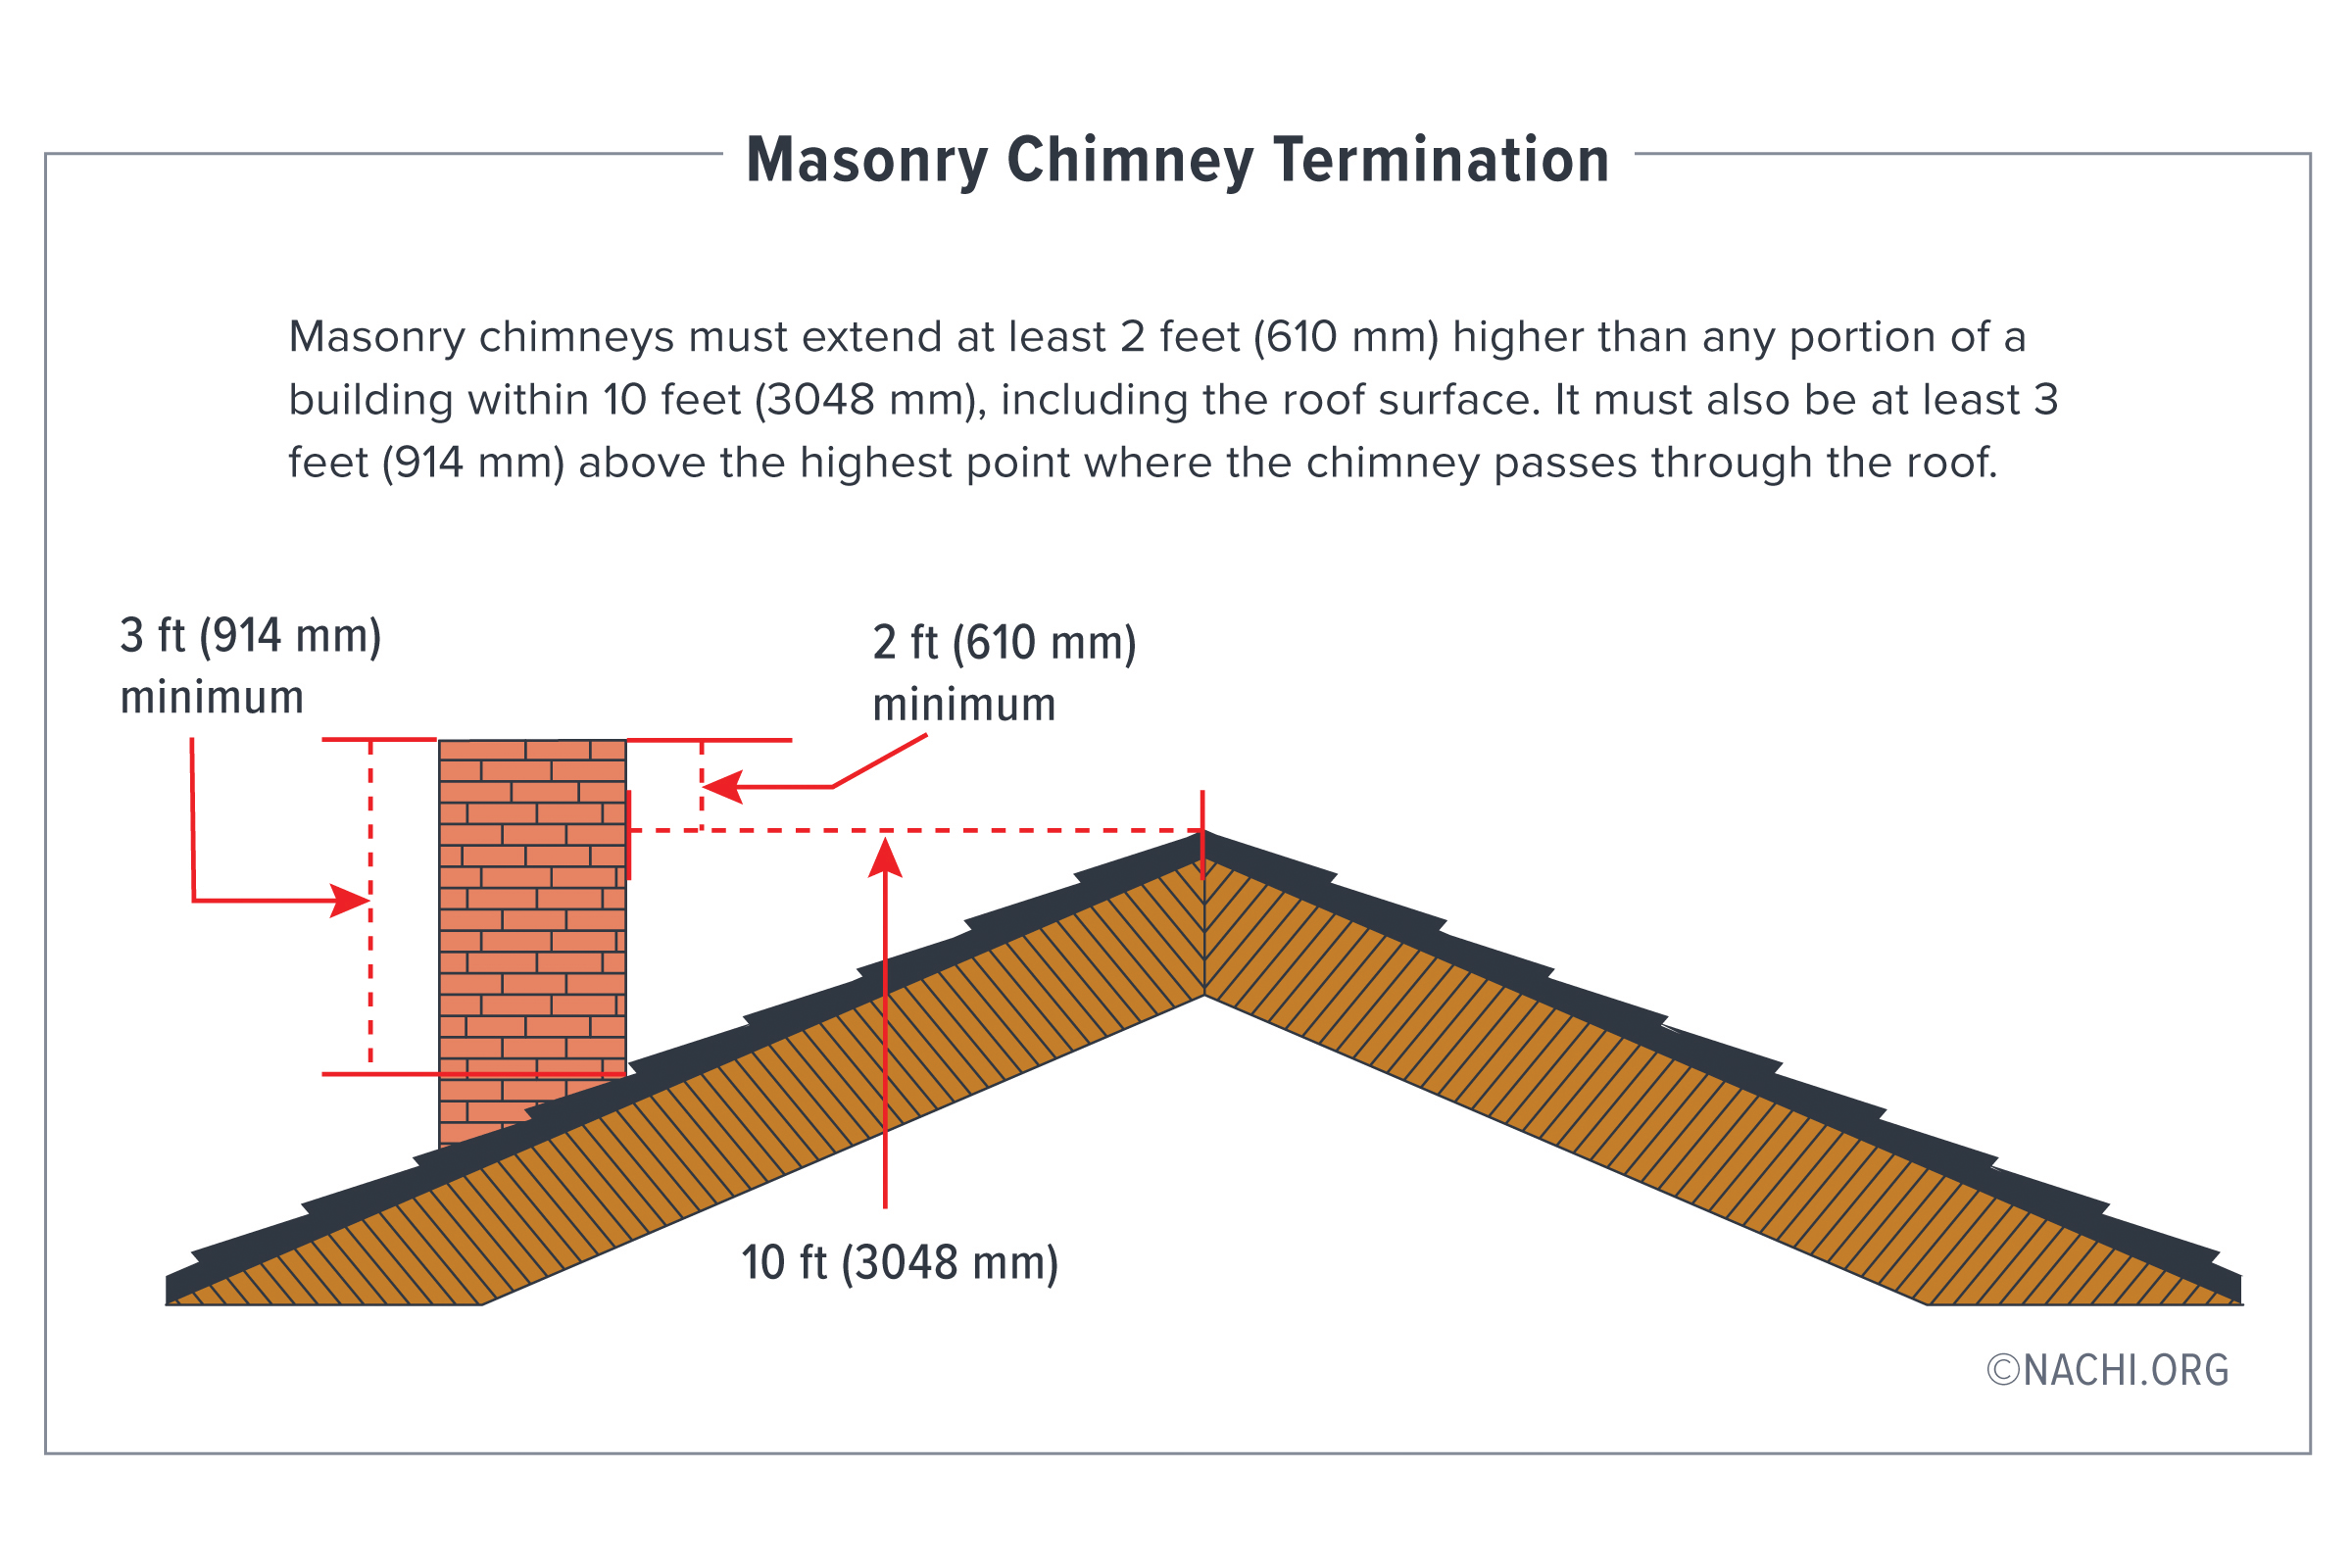 Masonry chimney termination measurements. 3-2-10 Rule.